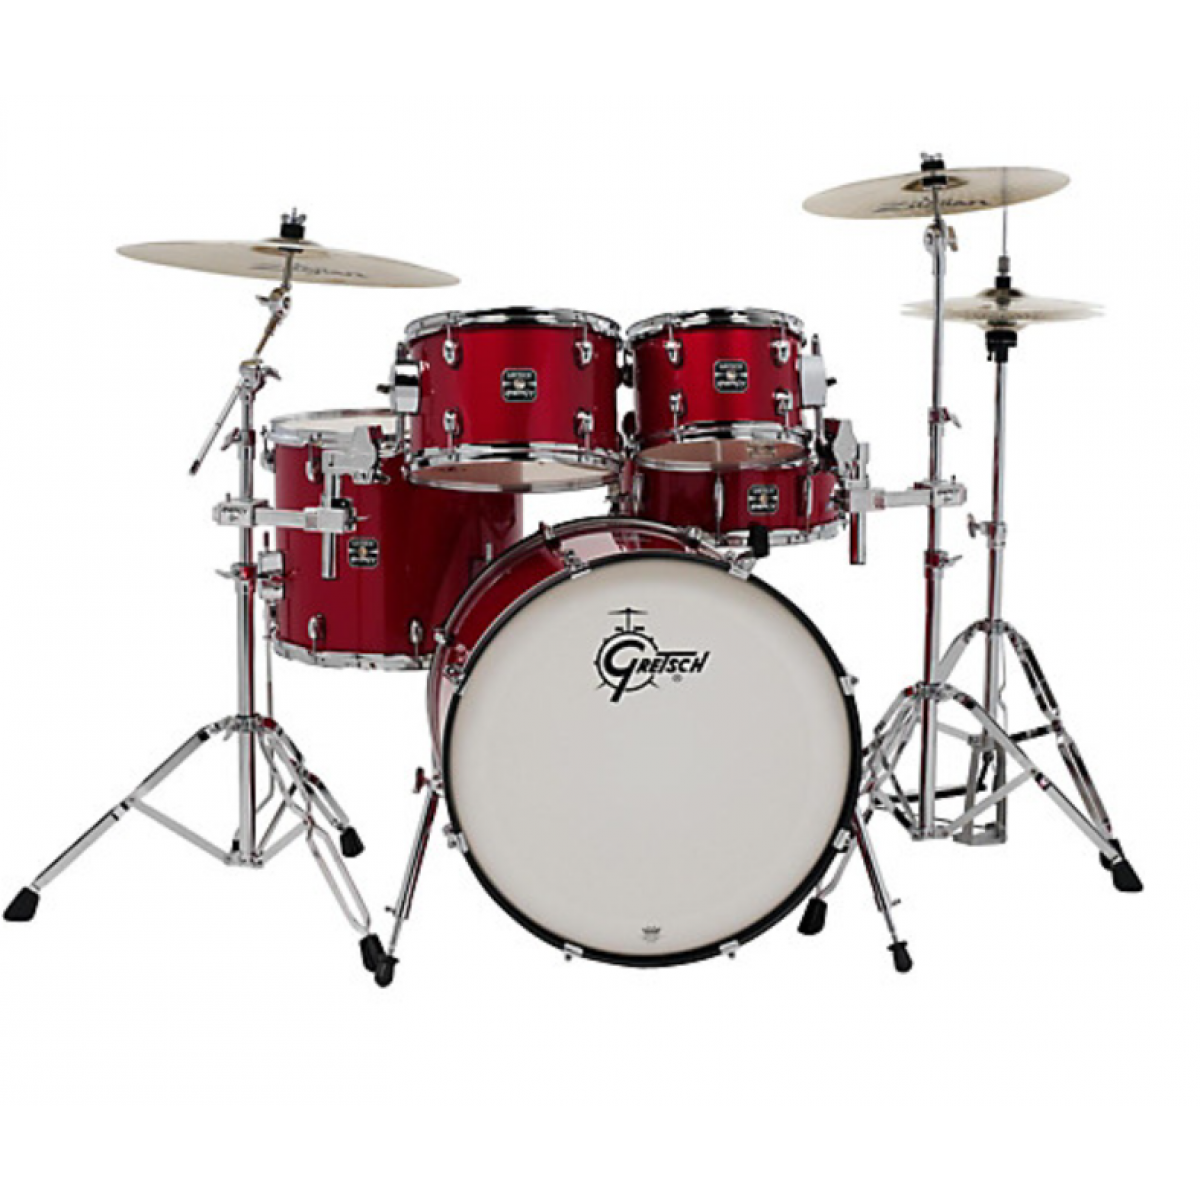 gretsch ge4e825r energy series rock 5 pce drum kit with hardware red sparkle. Black Bedroom Furniture Sets. Home Design Ideas